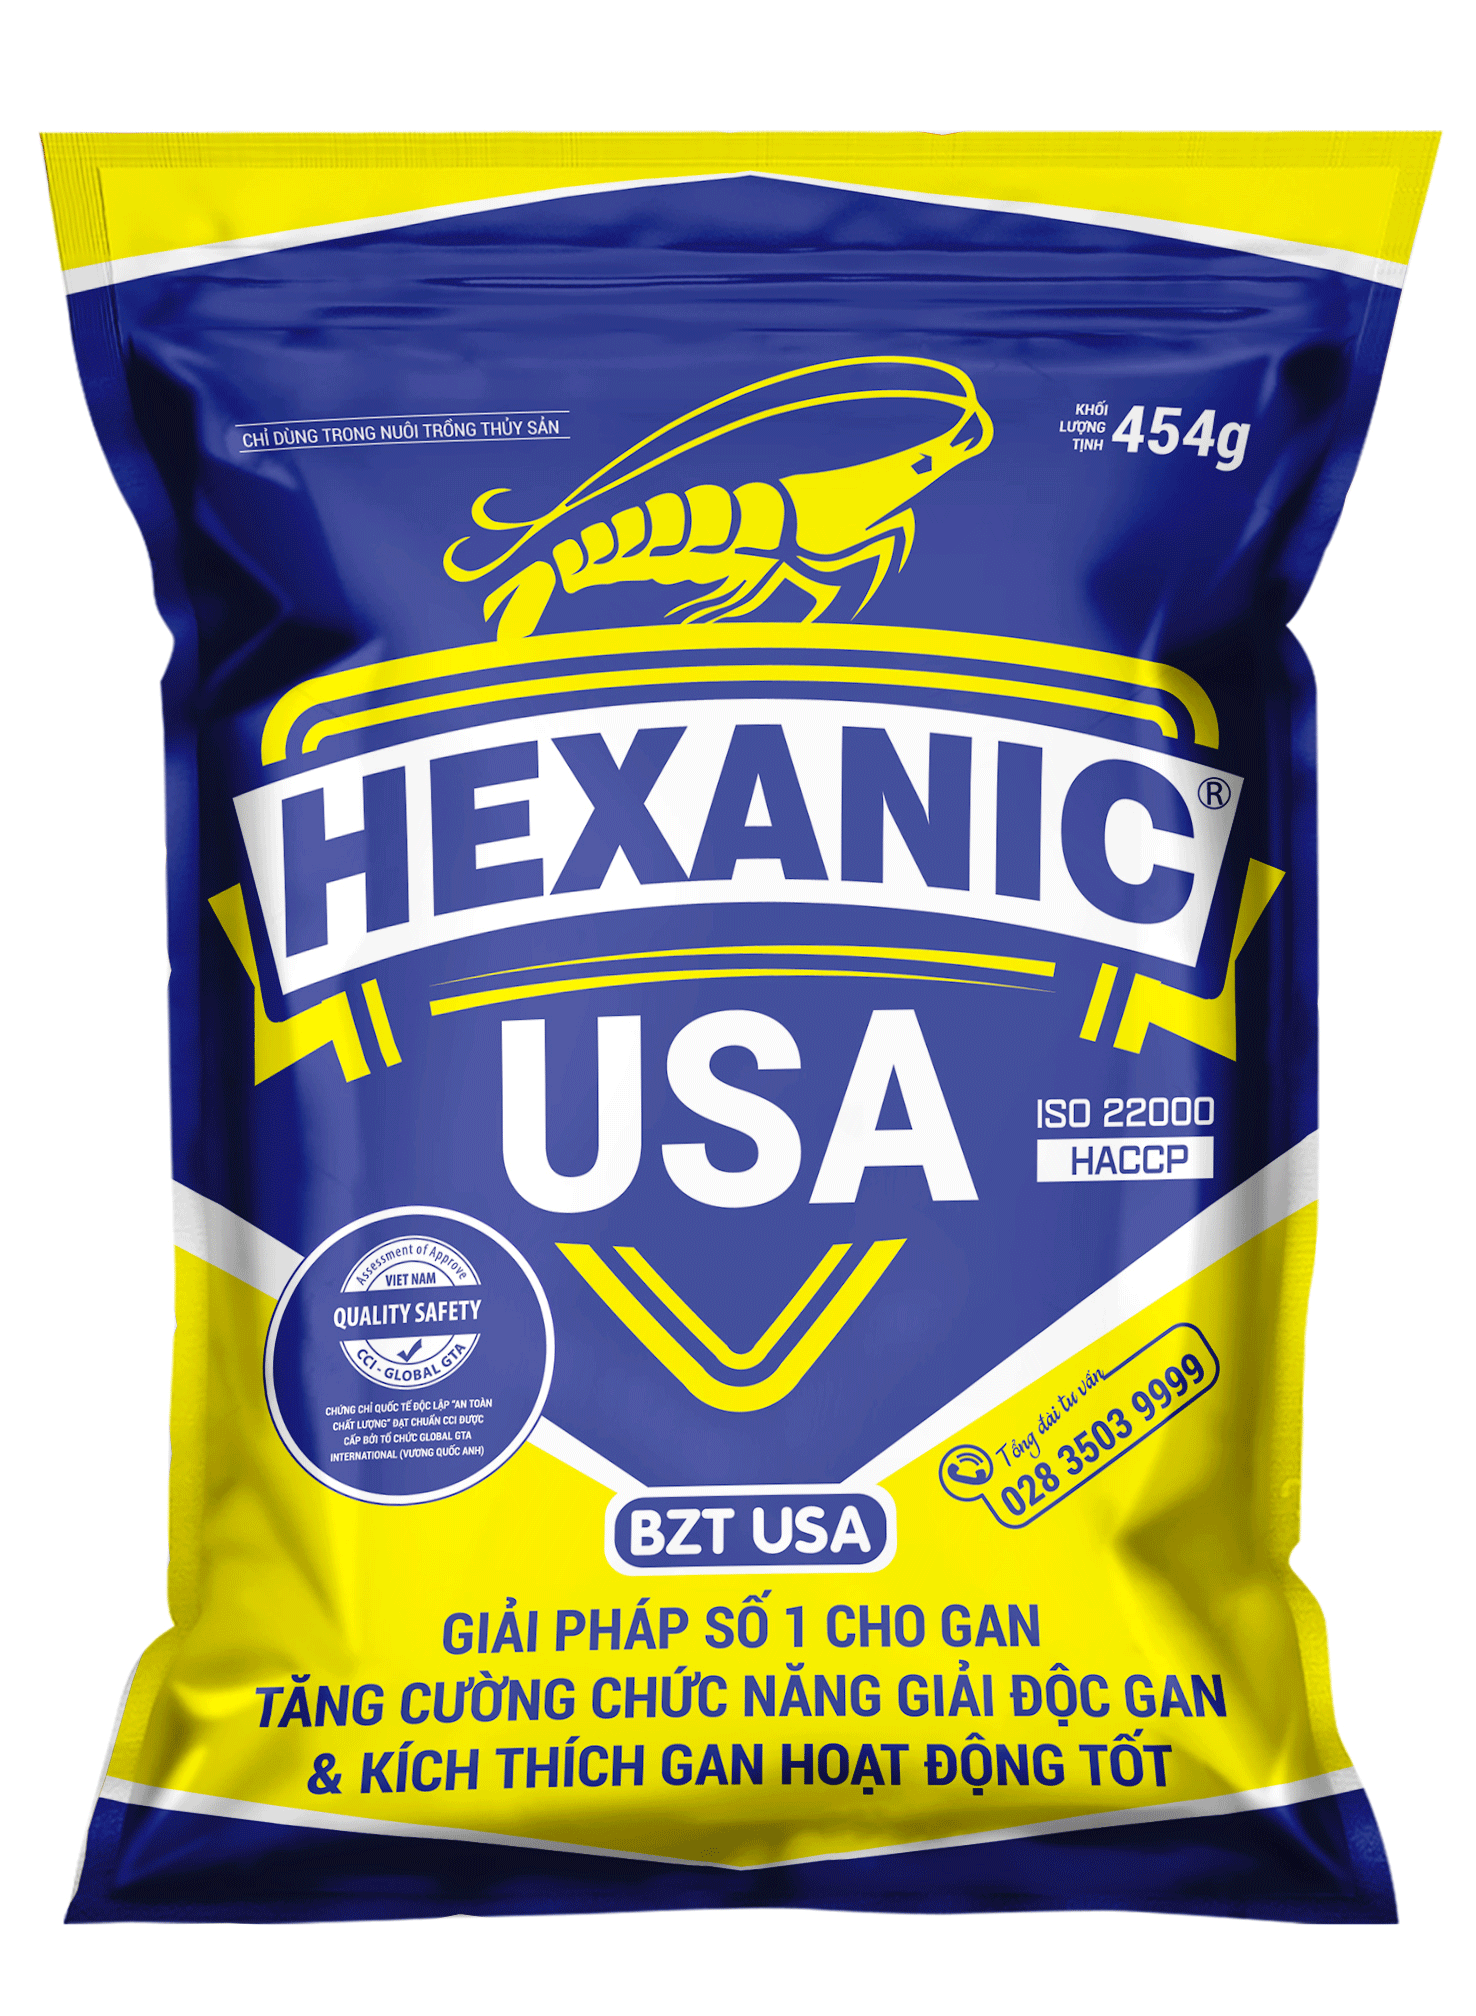 HEXANIC USA